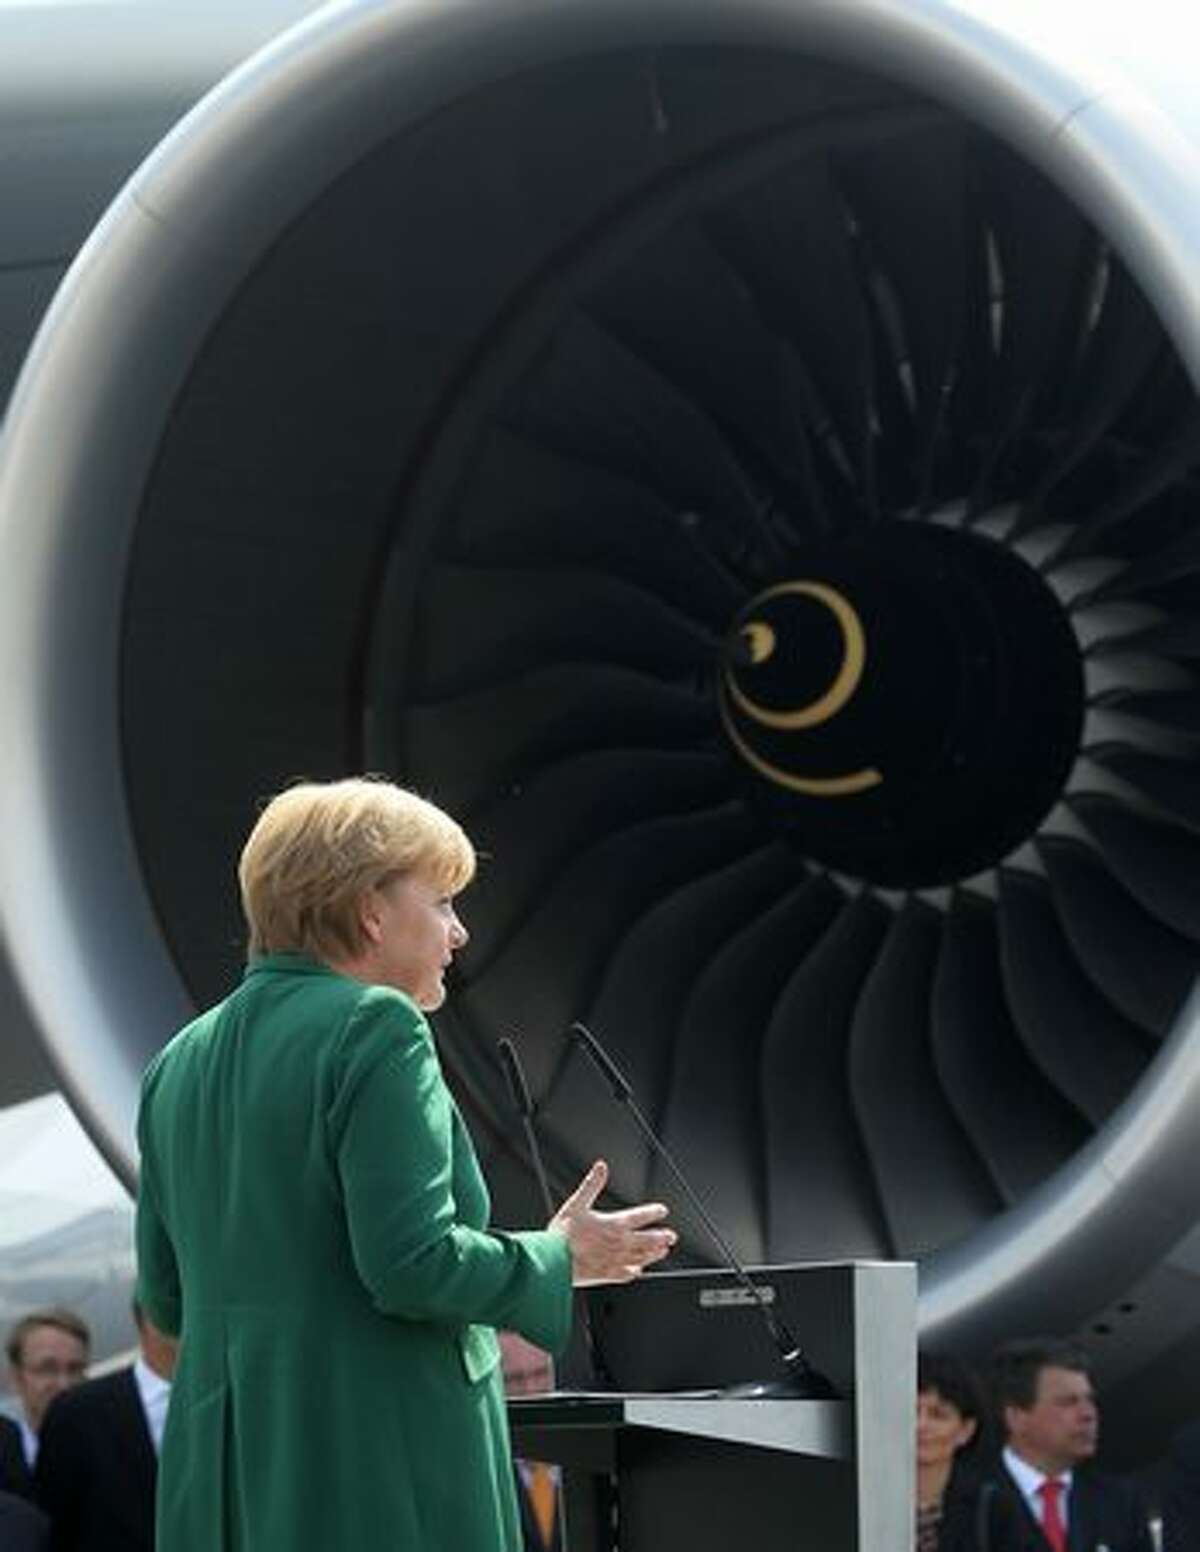 German Chancellor Angela Merkel speaks in front of a Lufthansa Airbus A380 airliner at the ILA Berlin Air Show.